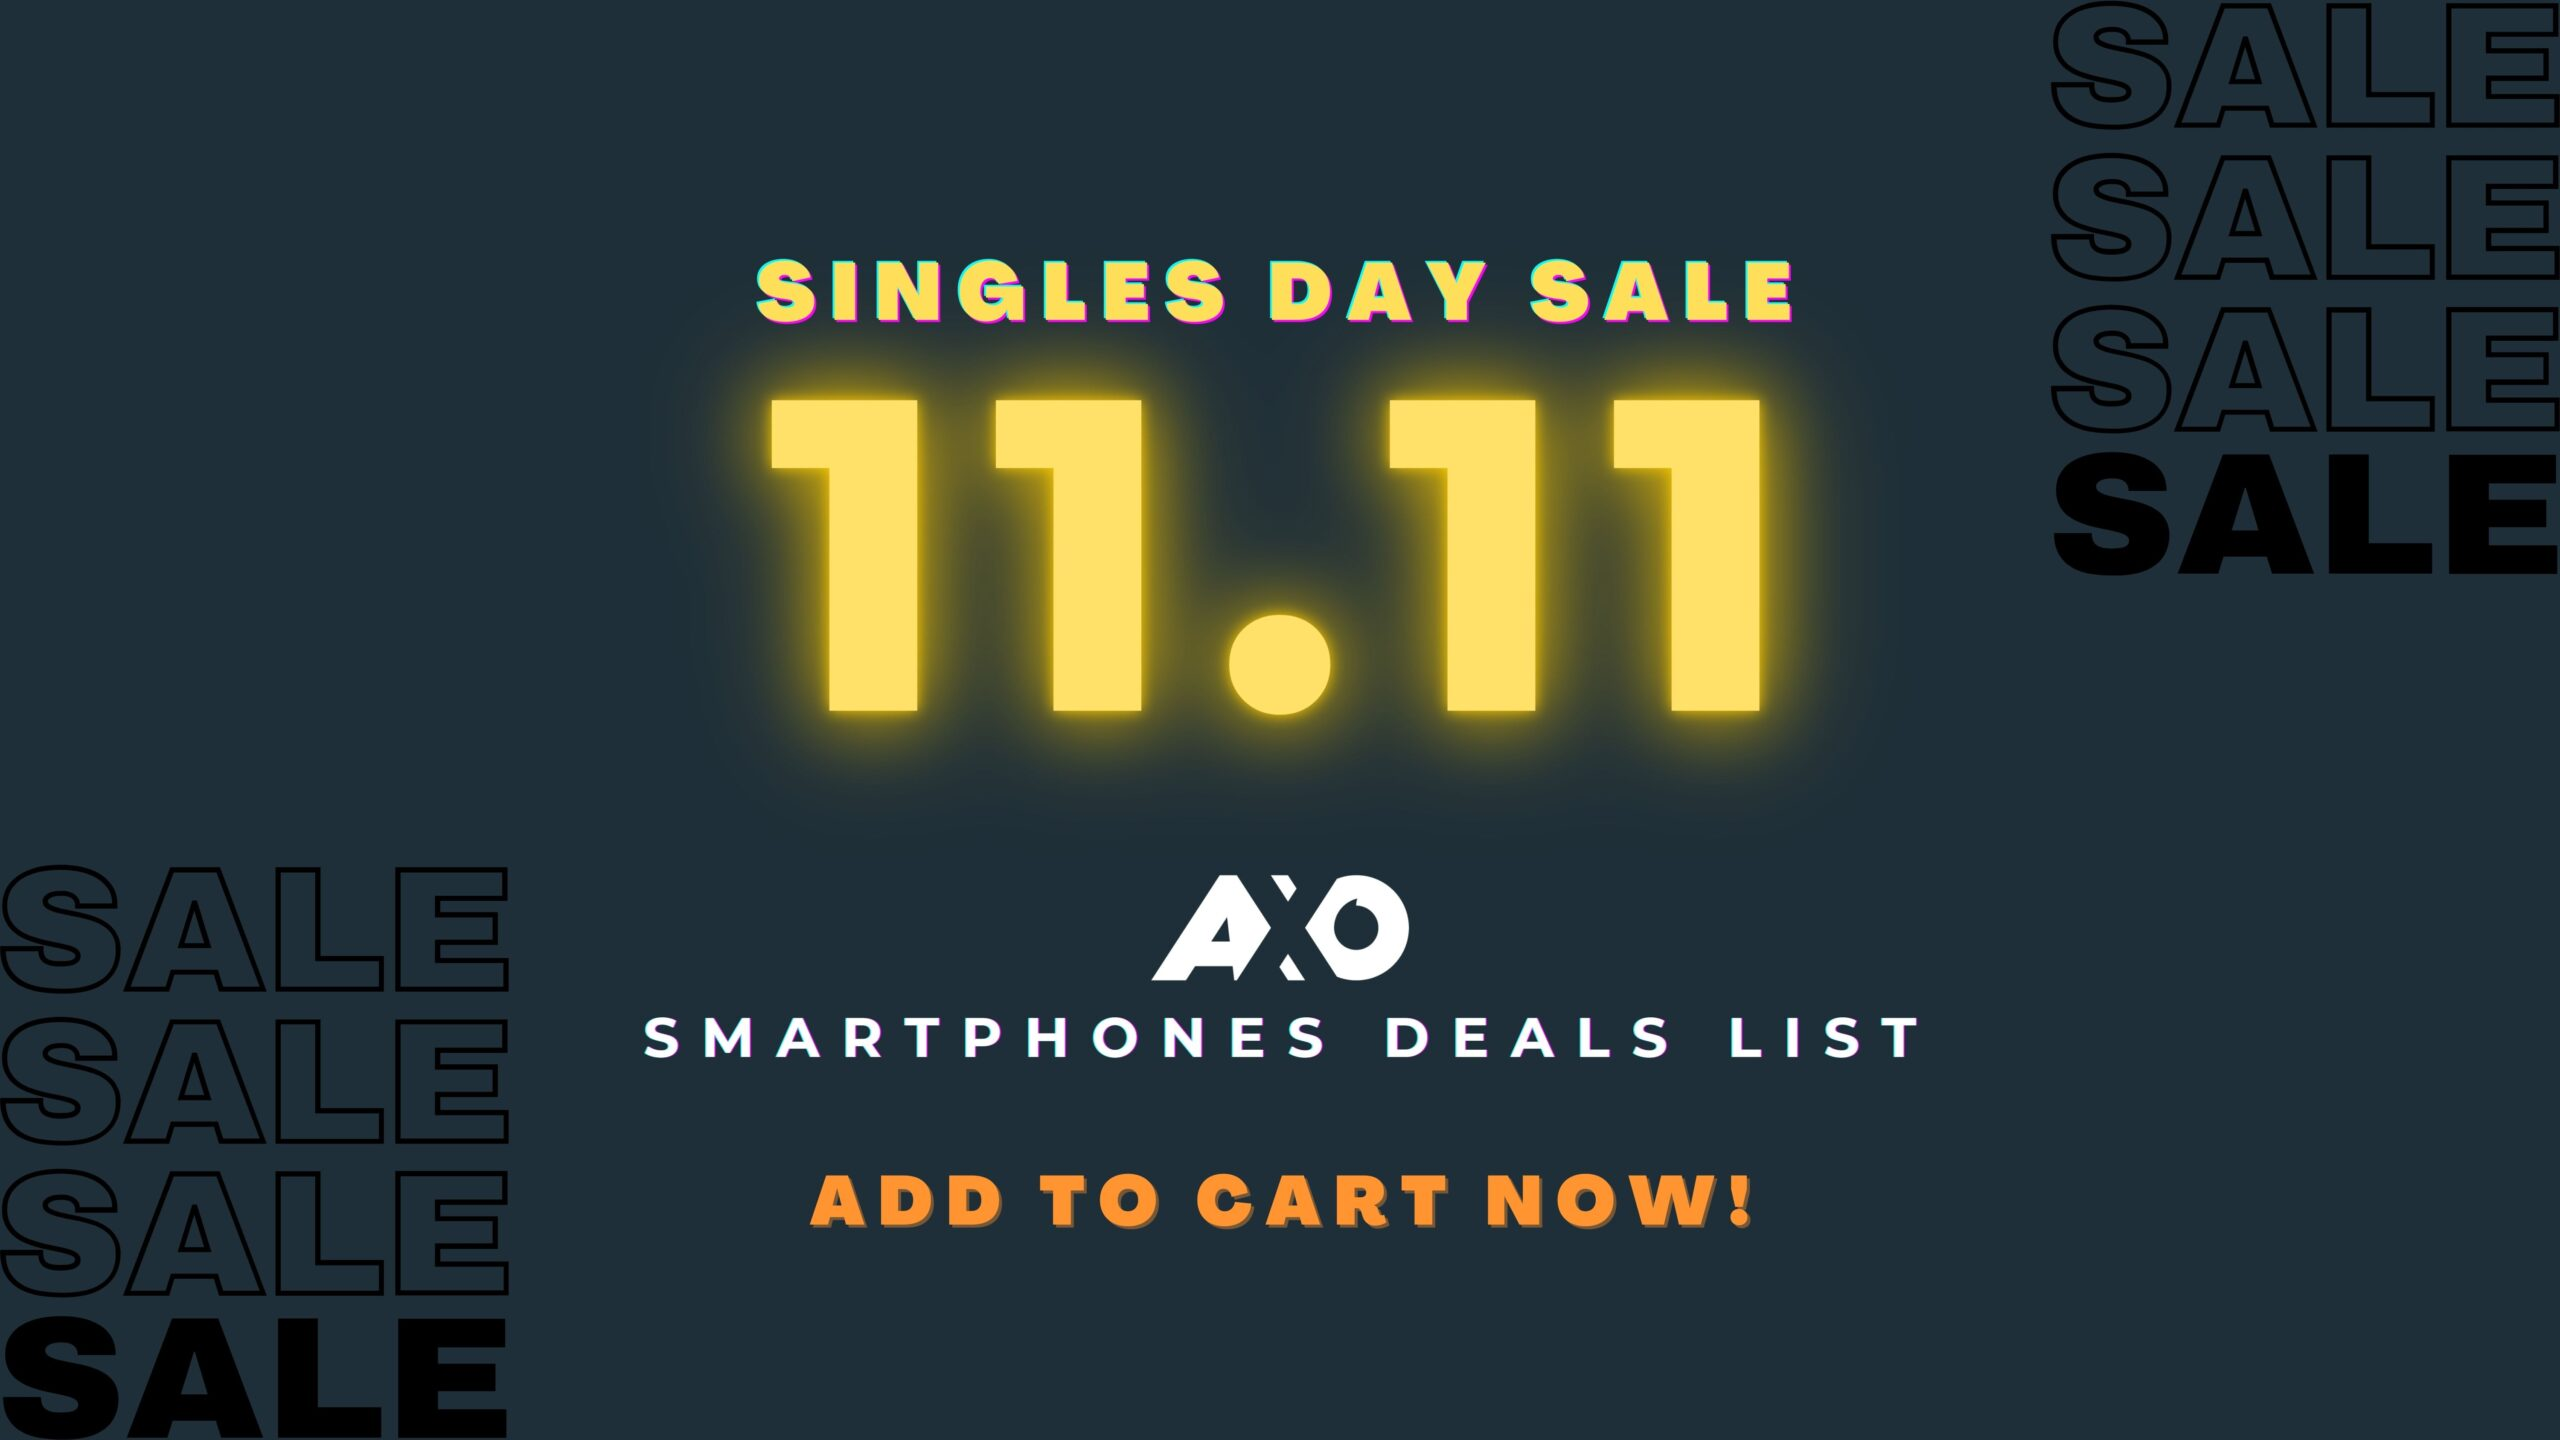 [2020] Singles Day Smartphone Deals this 11.11 Sale! Add To Cart Now! 5